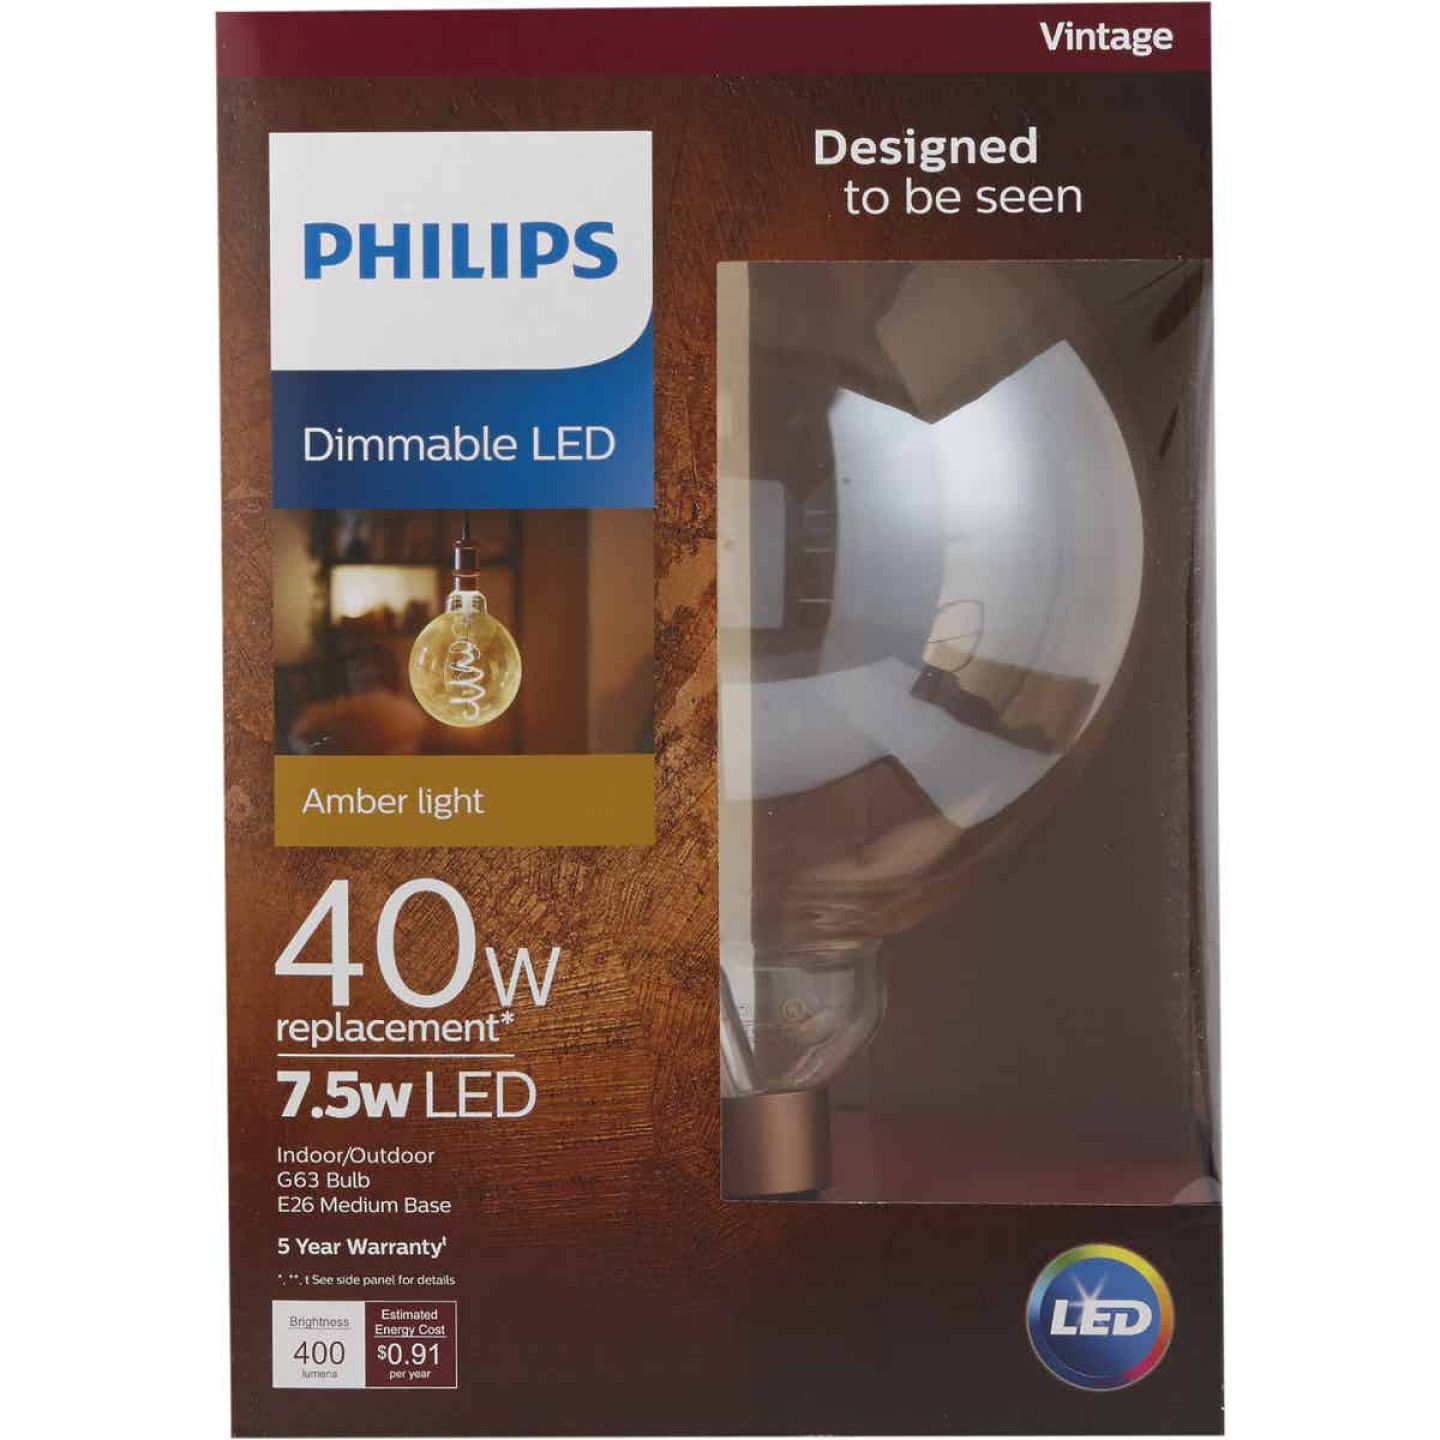 Philips 40W Equivalent Amber G63 Medium Dimmable LED Decorative Light Bulb Image 3